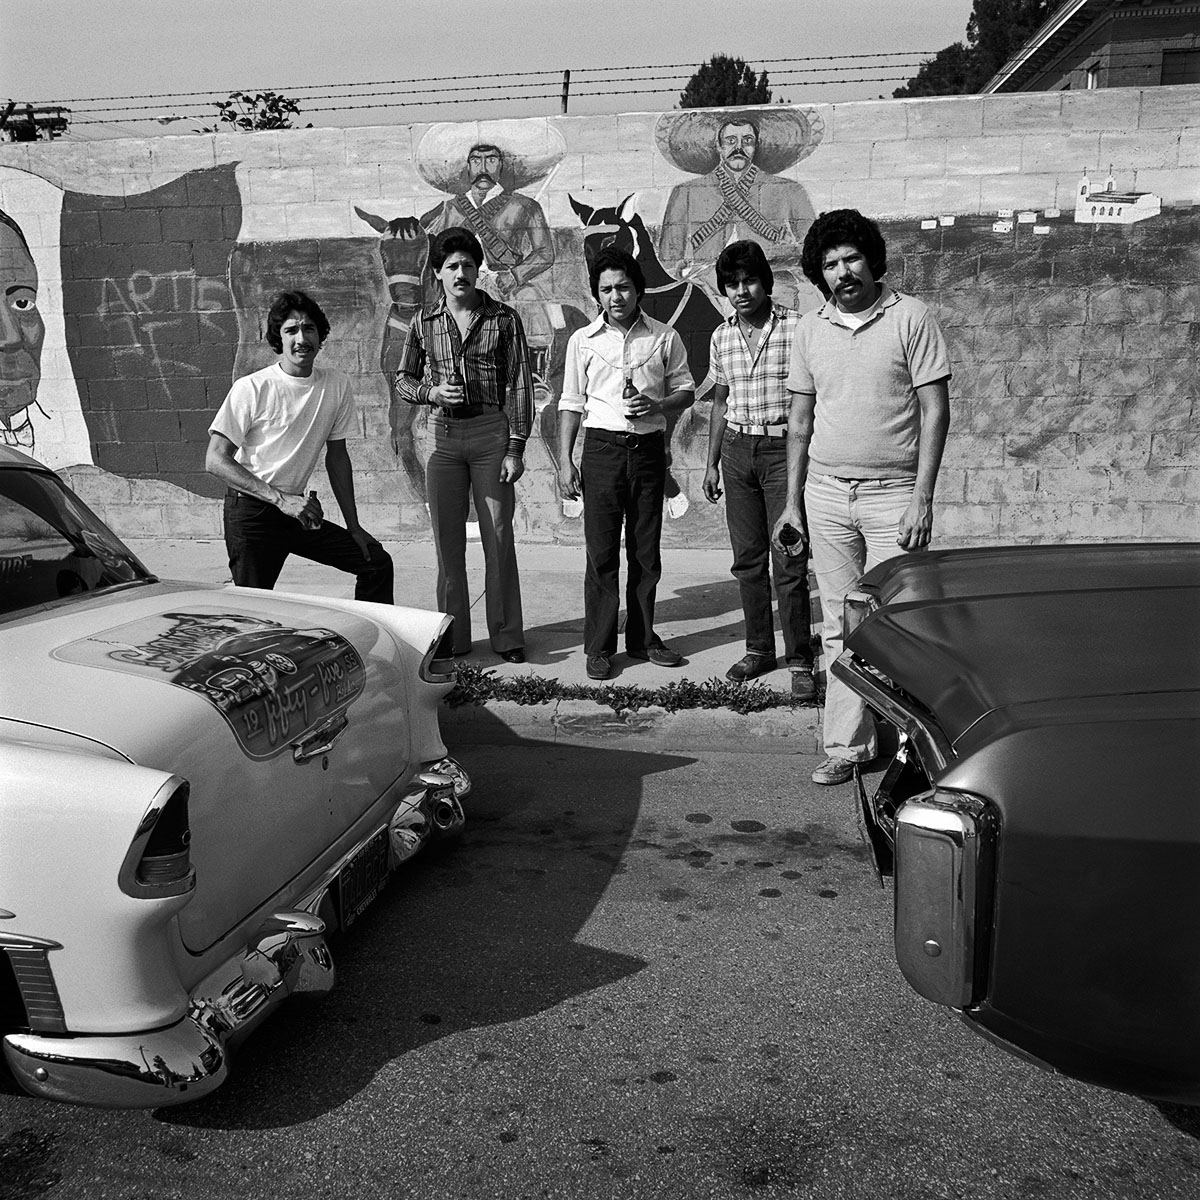 Five Youths with Cars, East Los Angeles, 1978